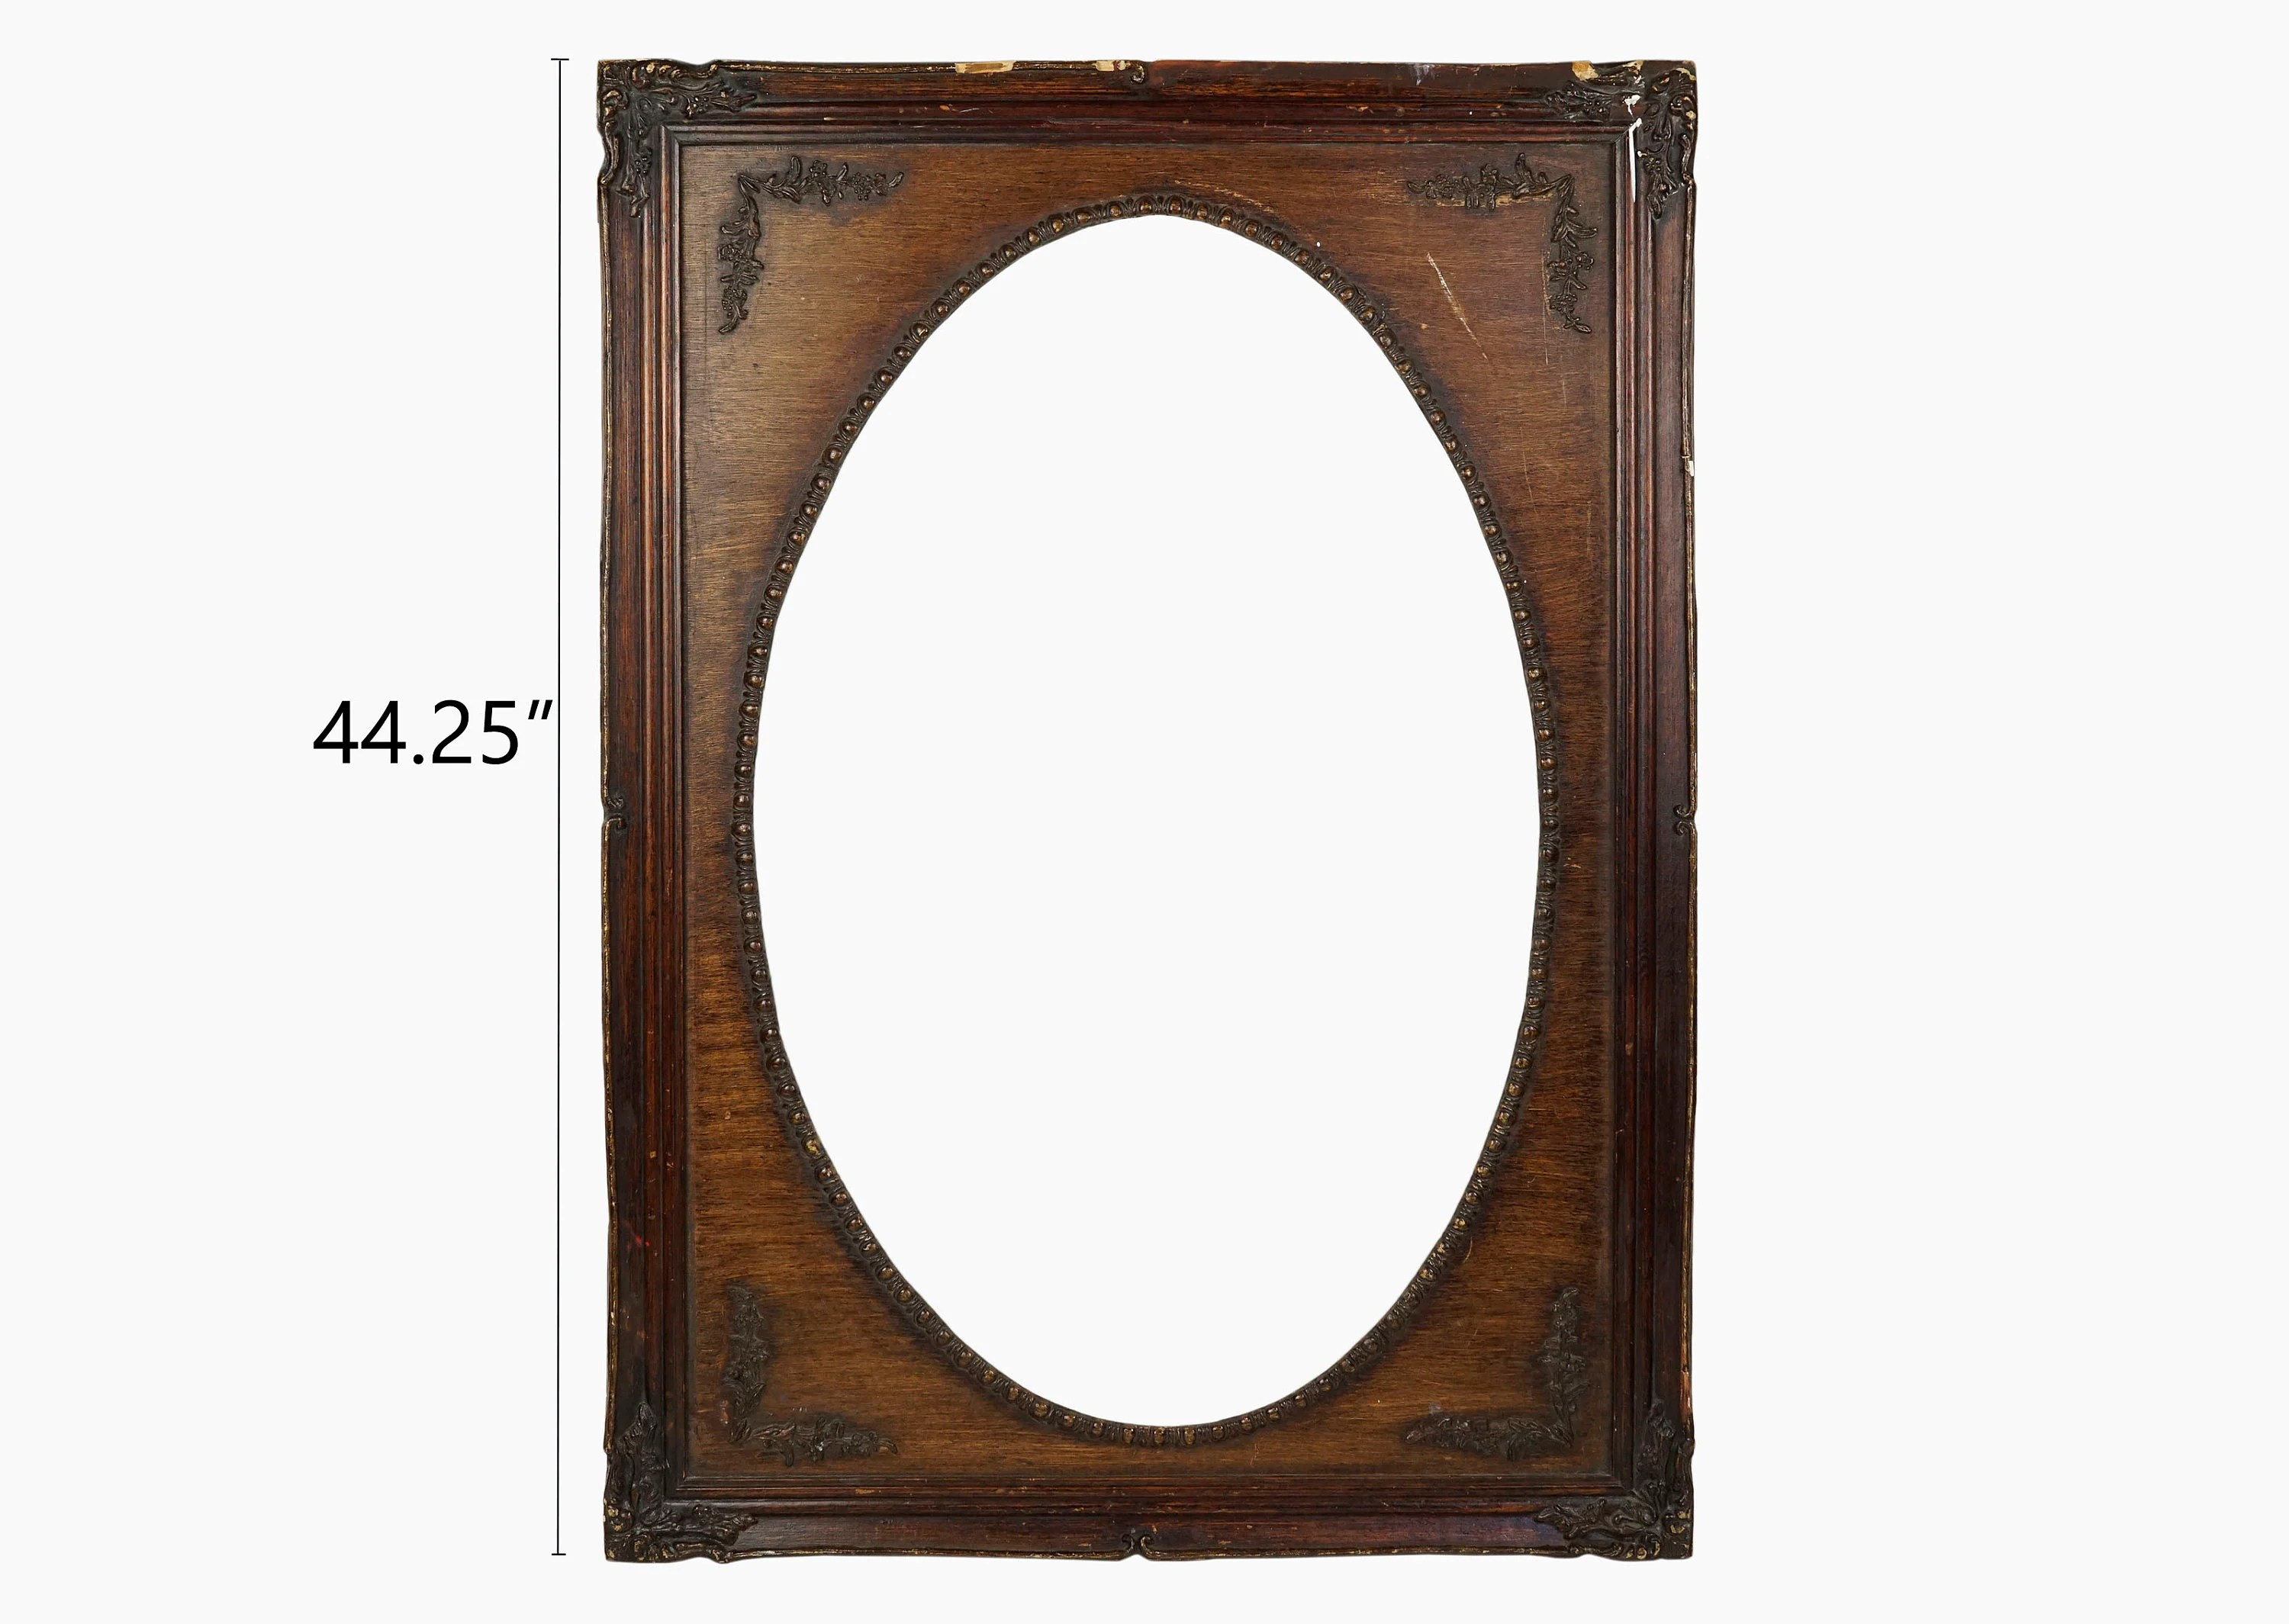 Vintage Wooden Victorian Frame Mirror Painting Oval Shaped